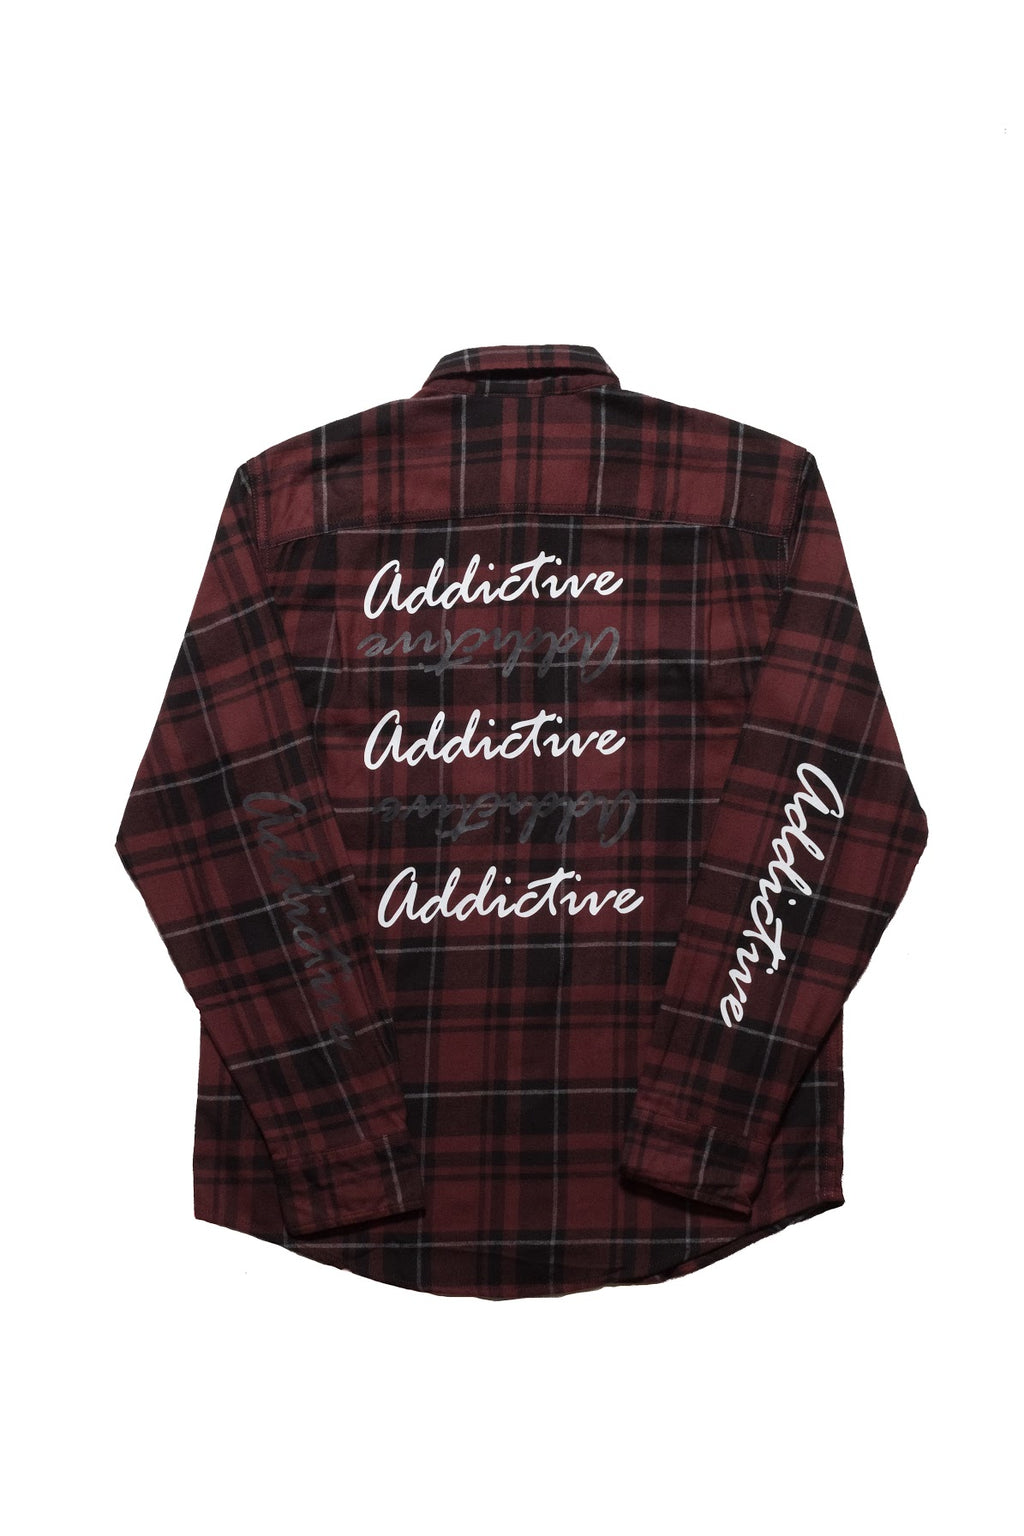 "Addictive ""Brand"" Flannel Shirt"